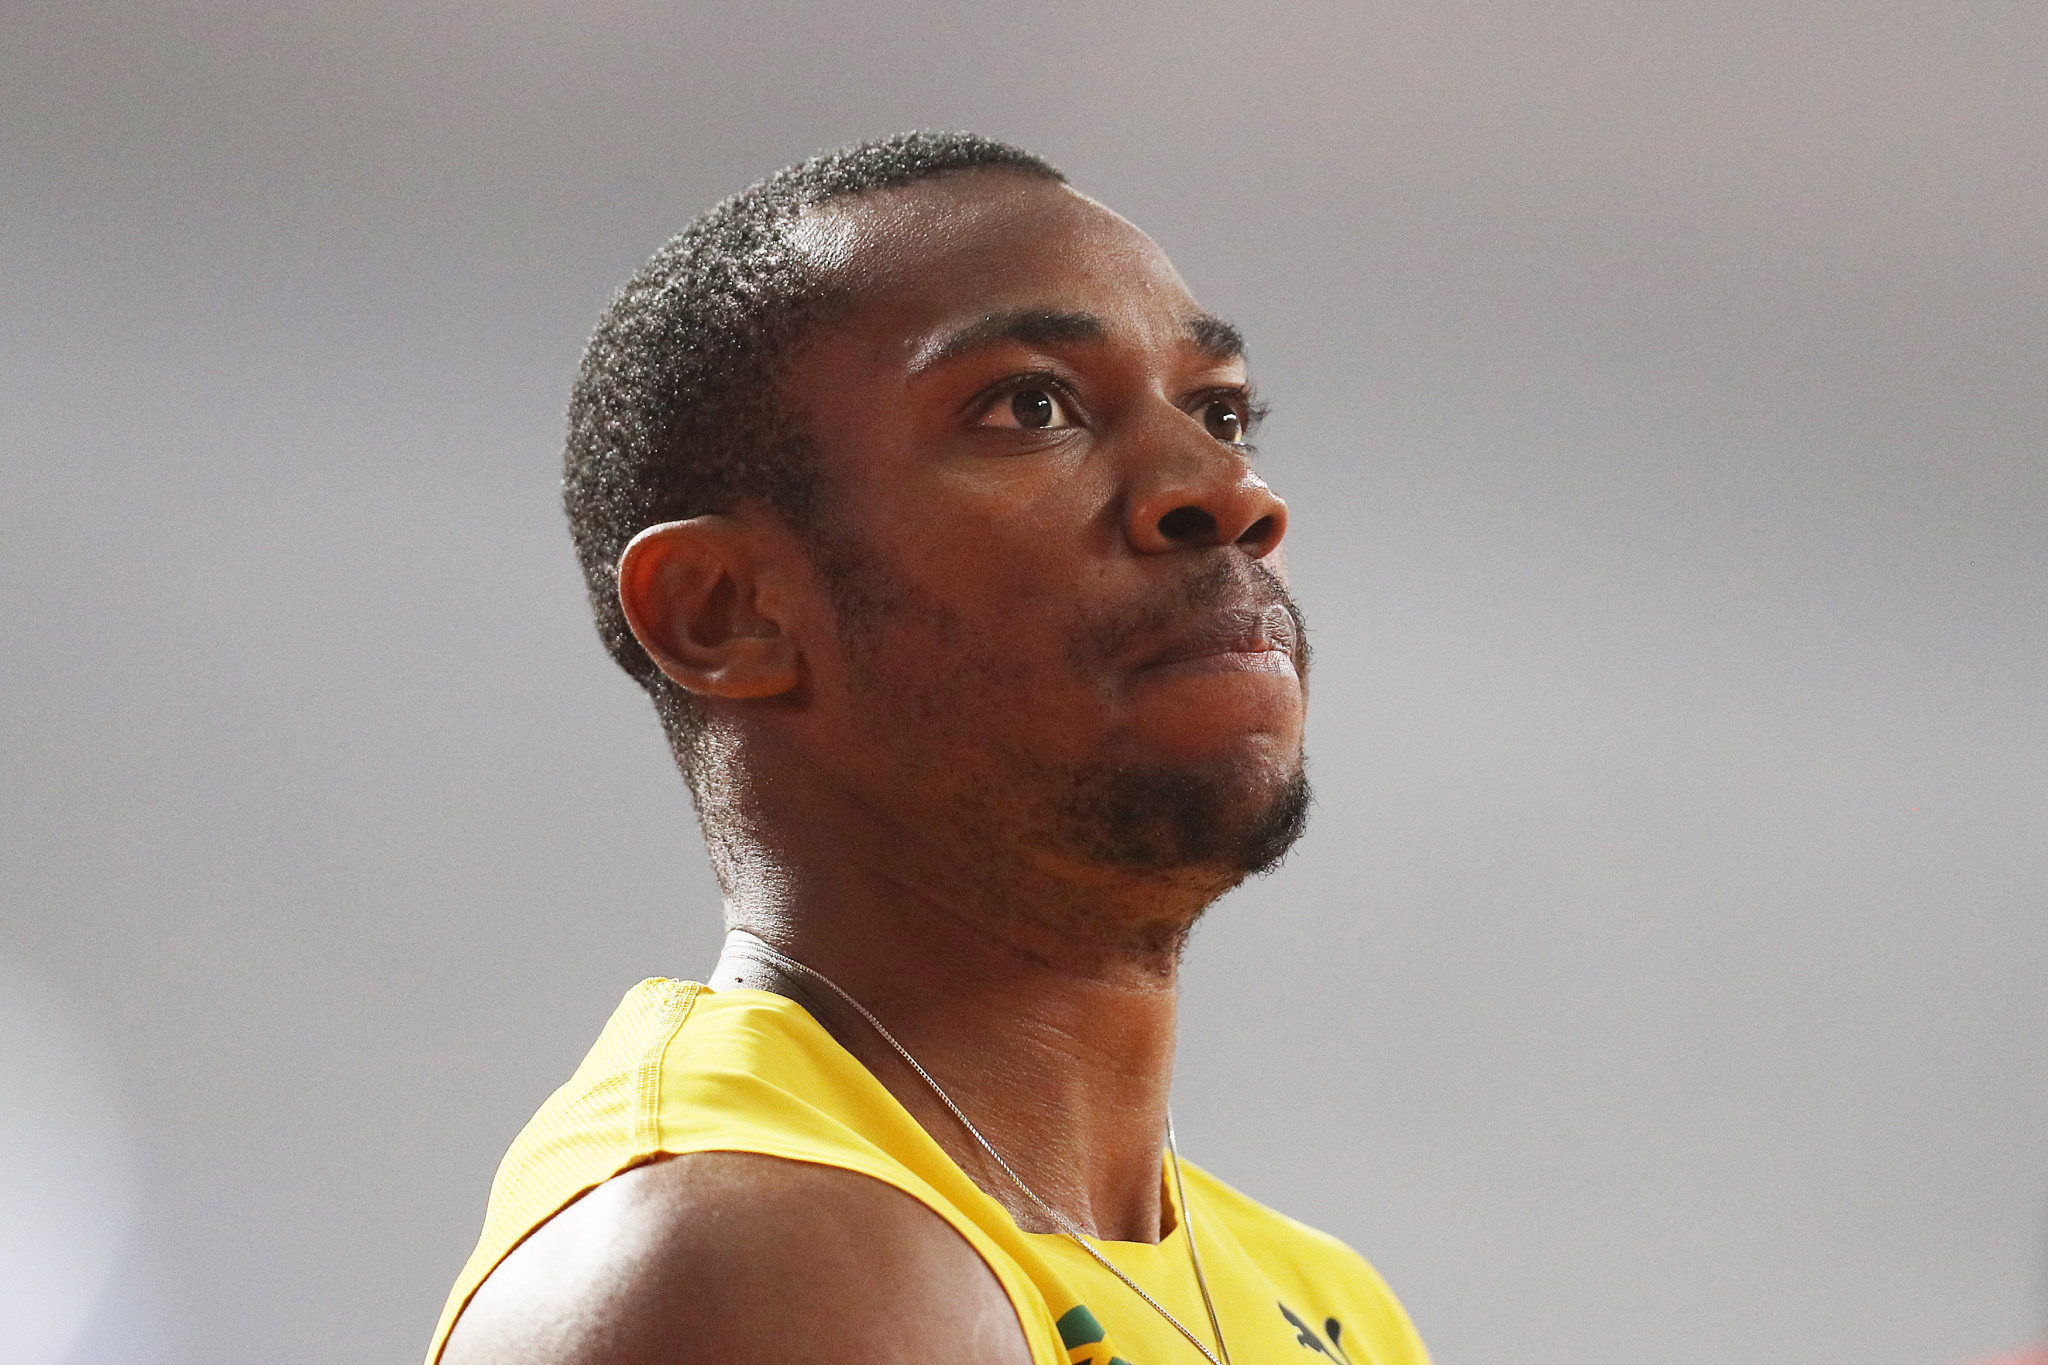 JAMAICAN SPRINTER BLAKE WOULD RATHER MISS TOKYO 2020 THAN TAKE COVID-19 VACCINE